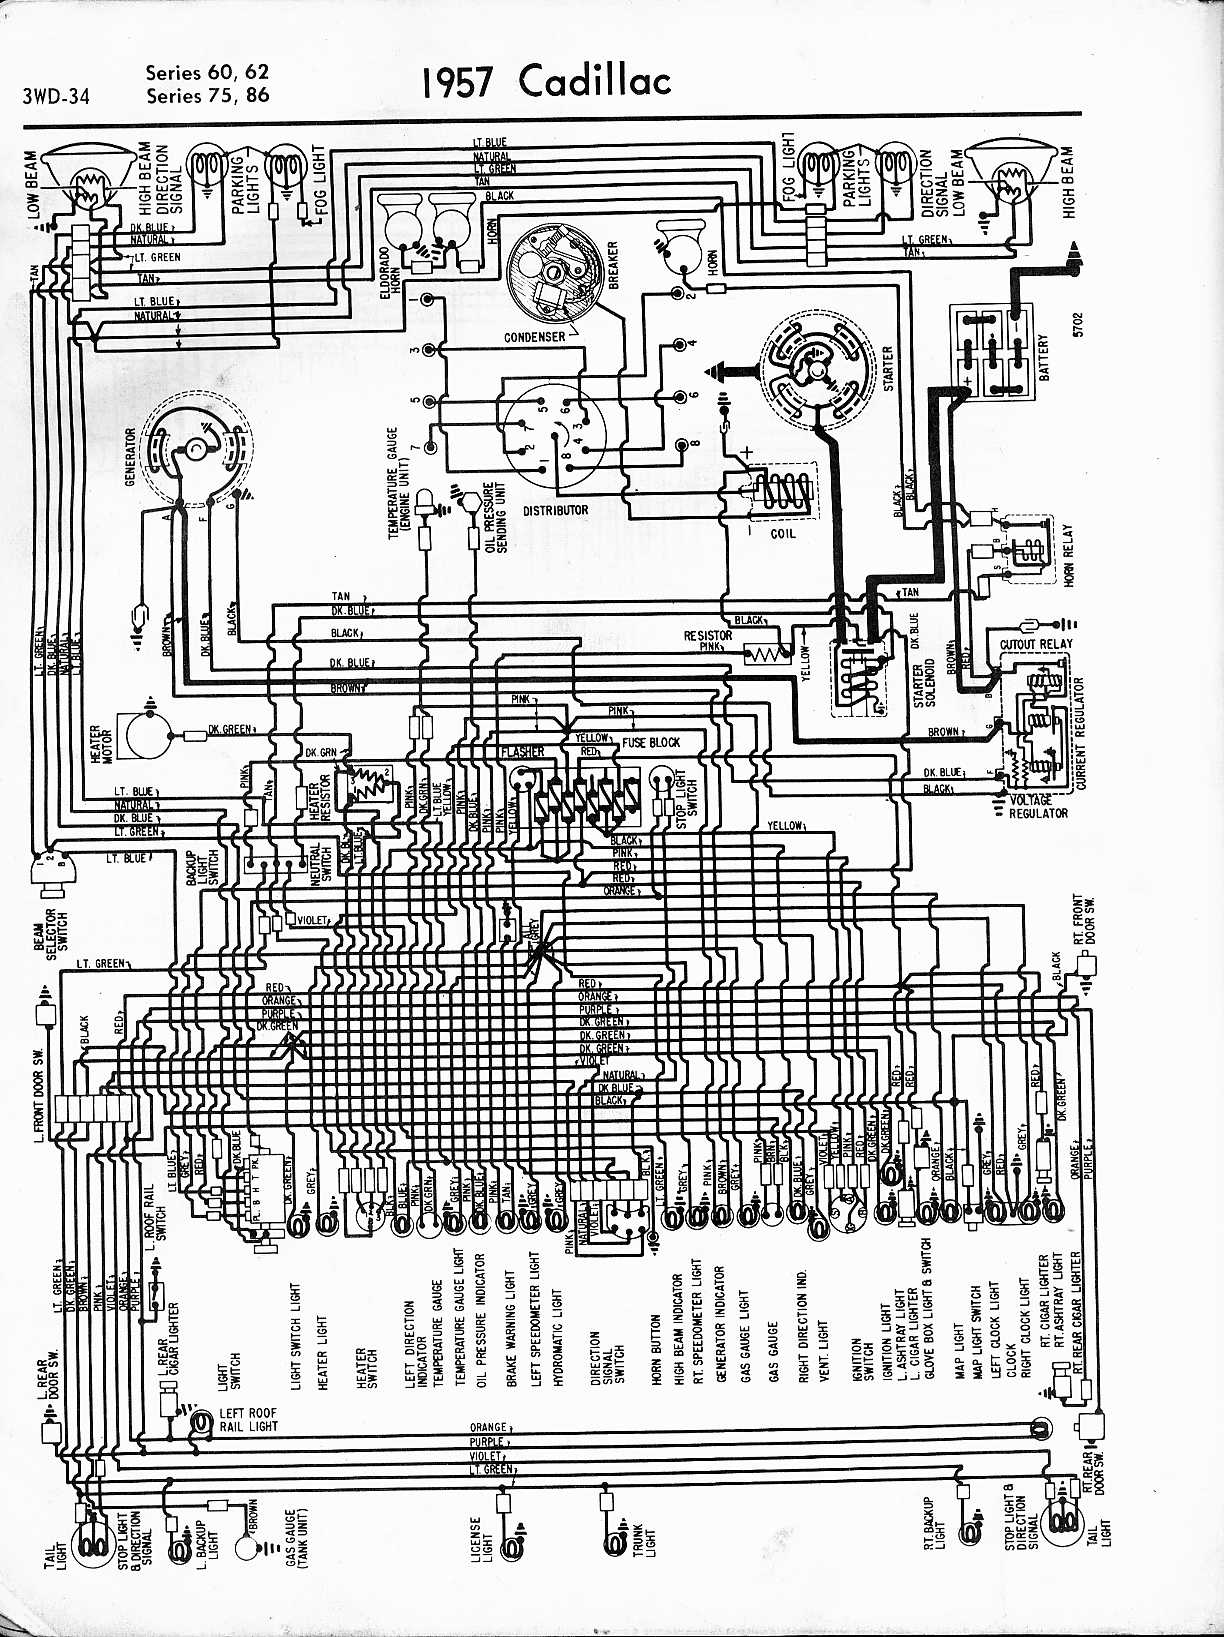 75 Buick Wiring Diagram Will Be A Thing 2011 Lucerne Cadillac Diagrams 1957 1965 Rh Oldcarmanualproject Com 1996 Door